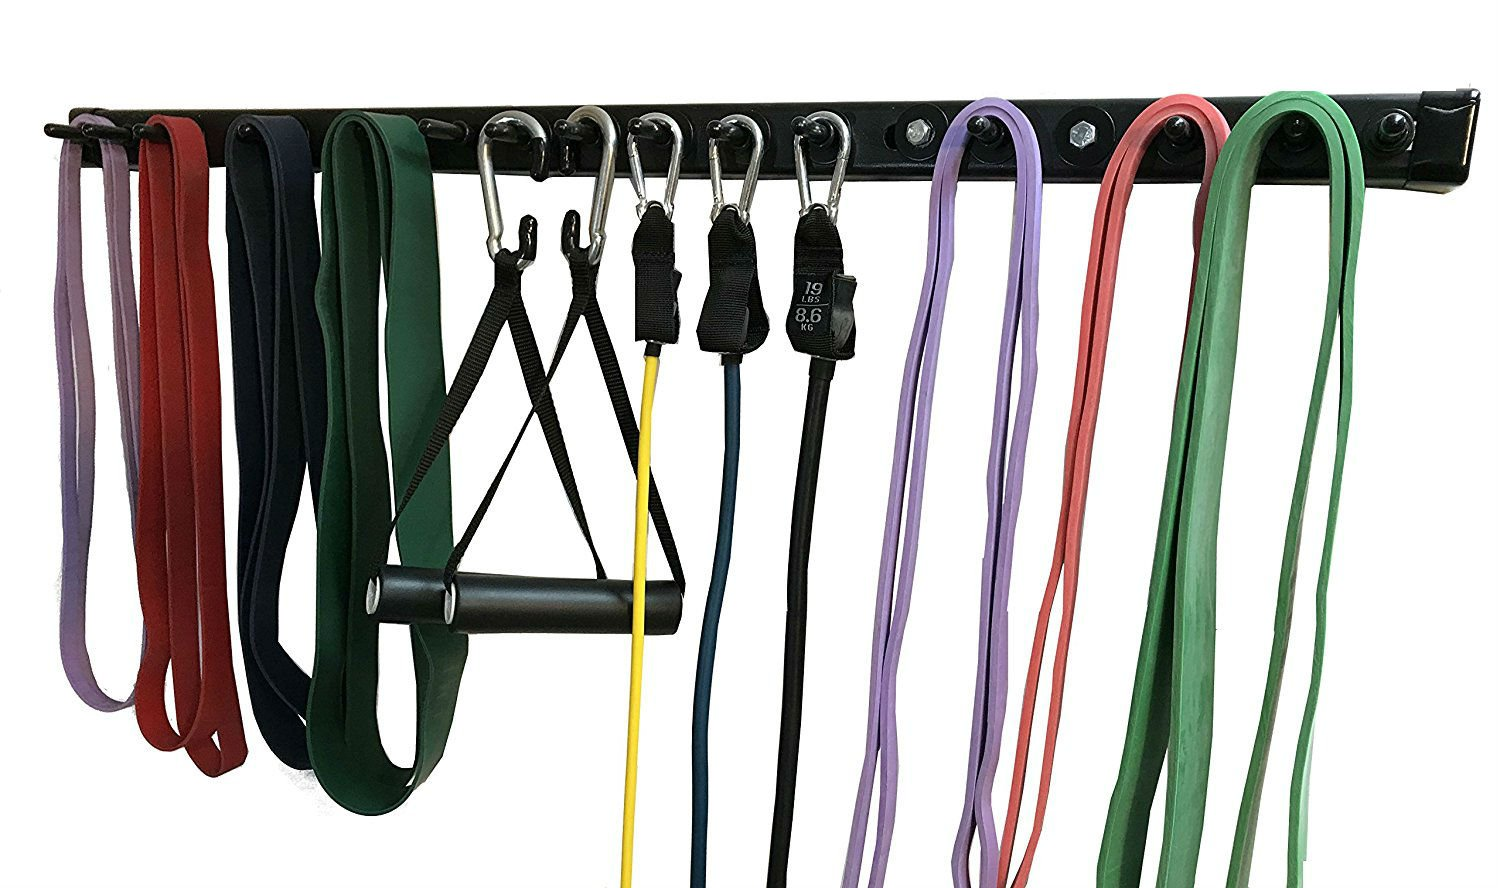 Anazao Fitness Gear New 38'' Storage Rack for Resistance Bands and Resistance Band Accessories (Exercise Bars, Handles, LAT Bar and Other Gear Sold Separately on